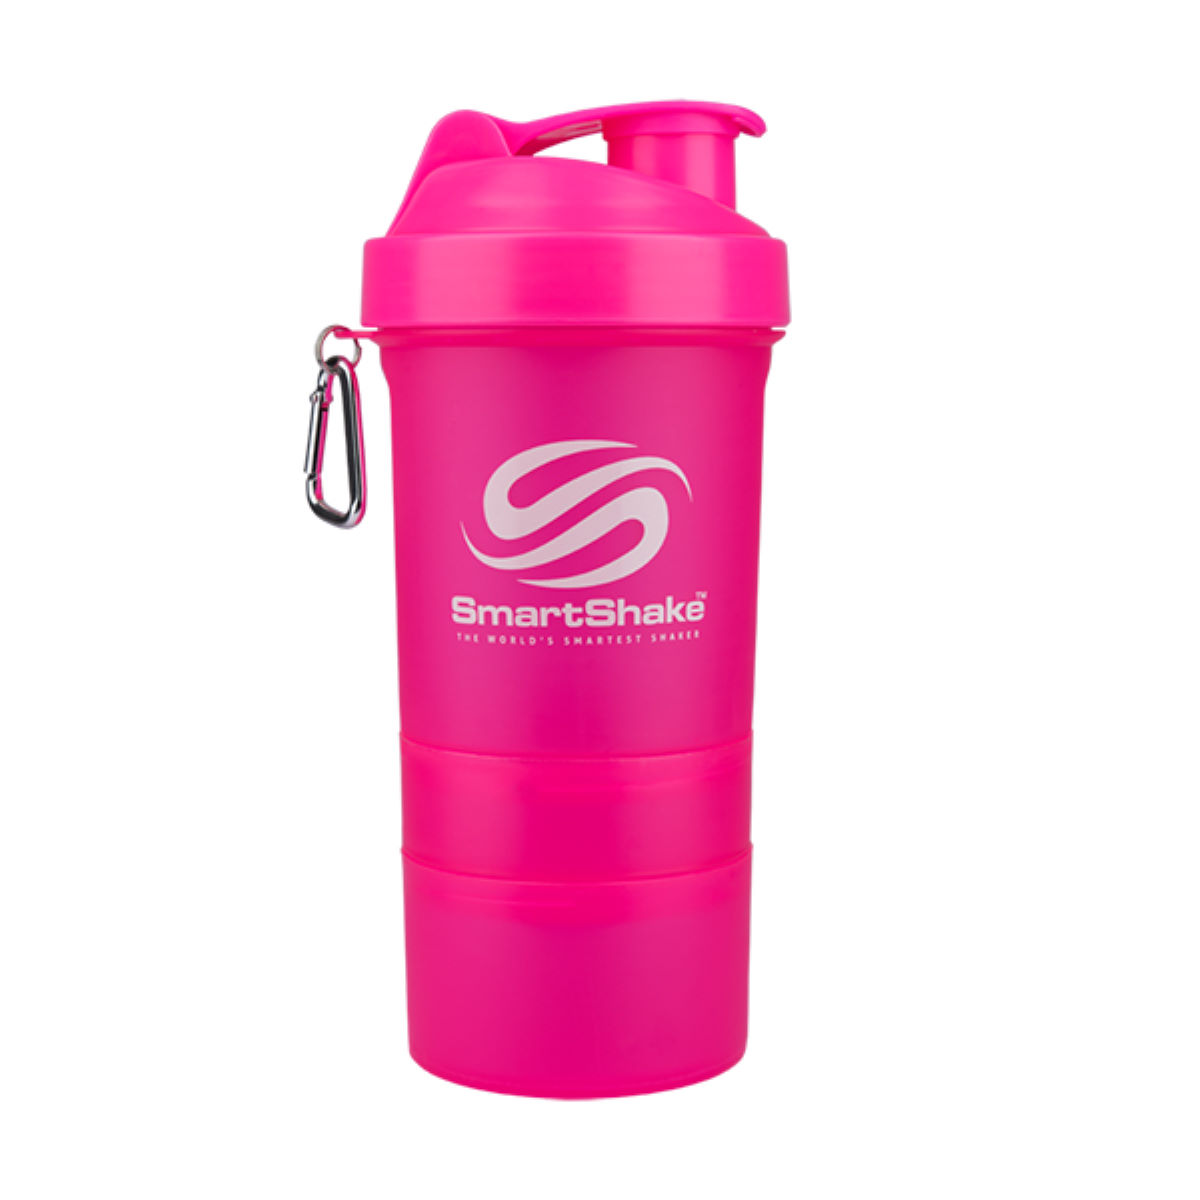 Image of Shaker SmartShake Smart Shake Original (rose fluo) - 600ml Neon Pink